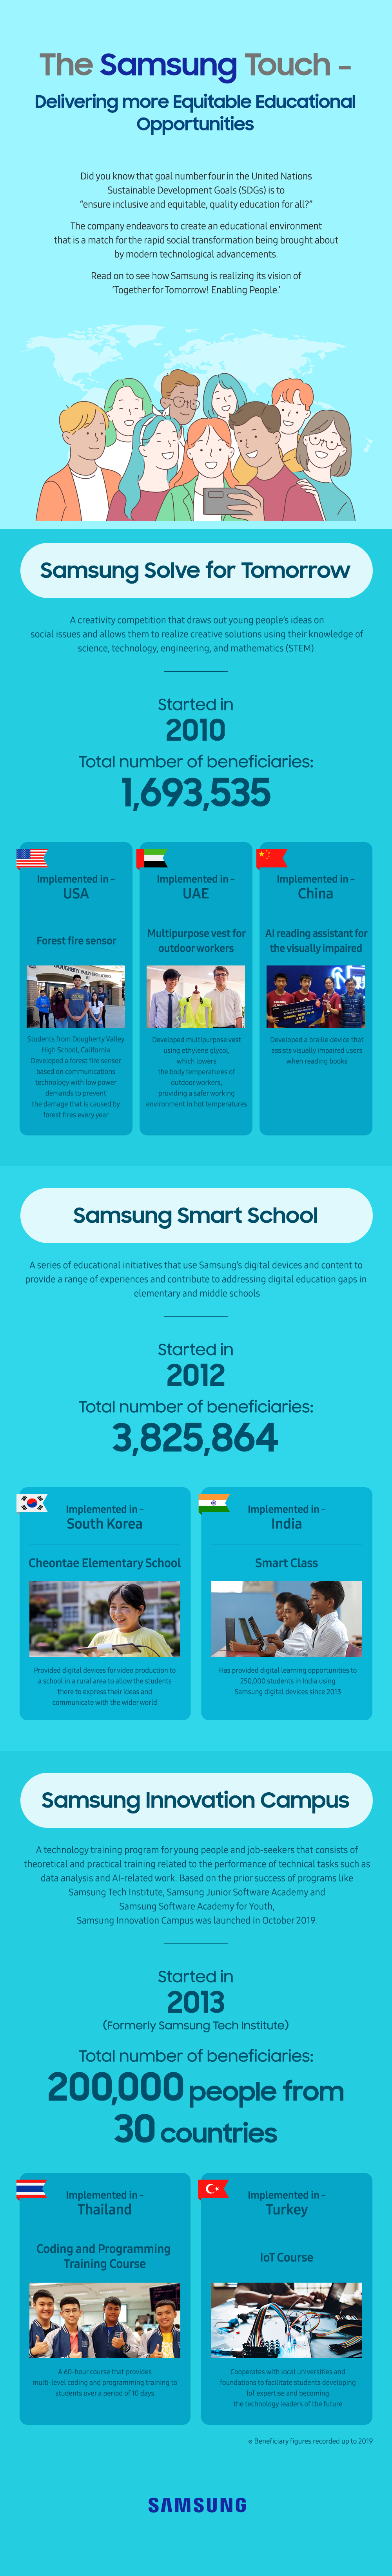 Rapidly Transforming Technological Era Of Today Samsung Has